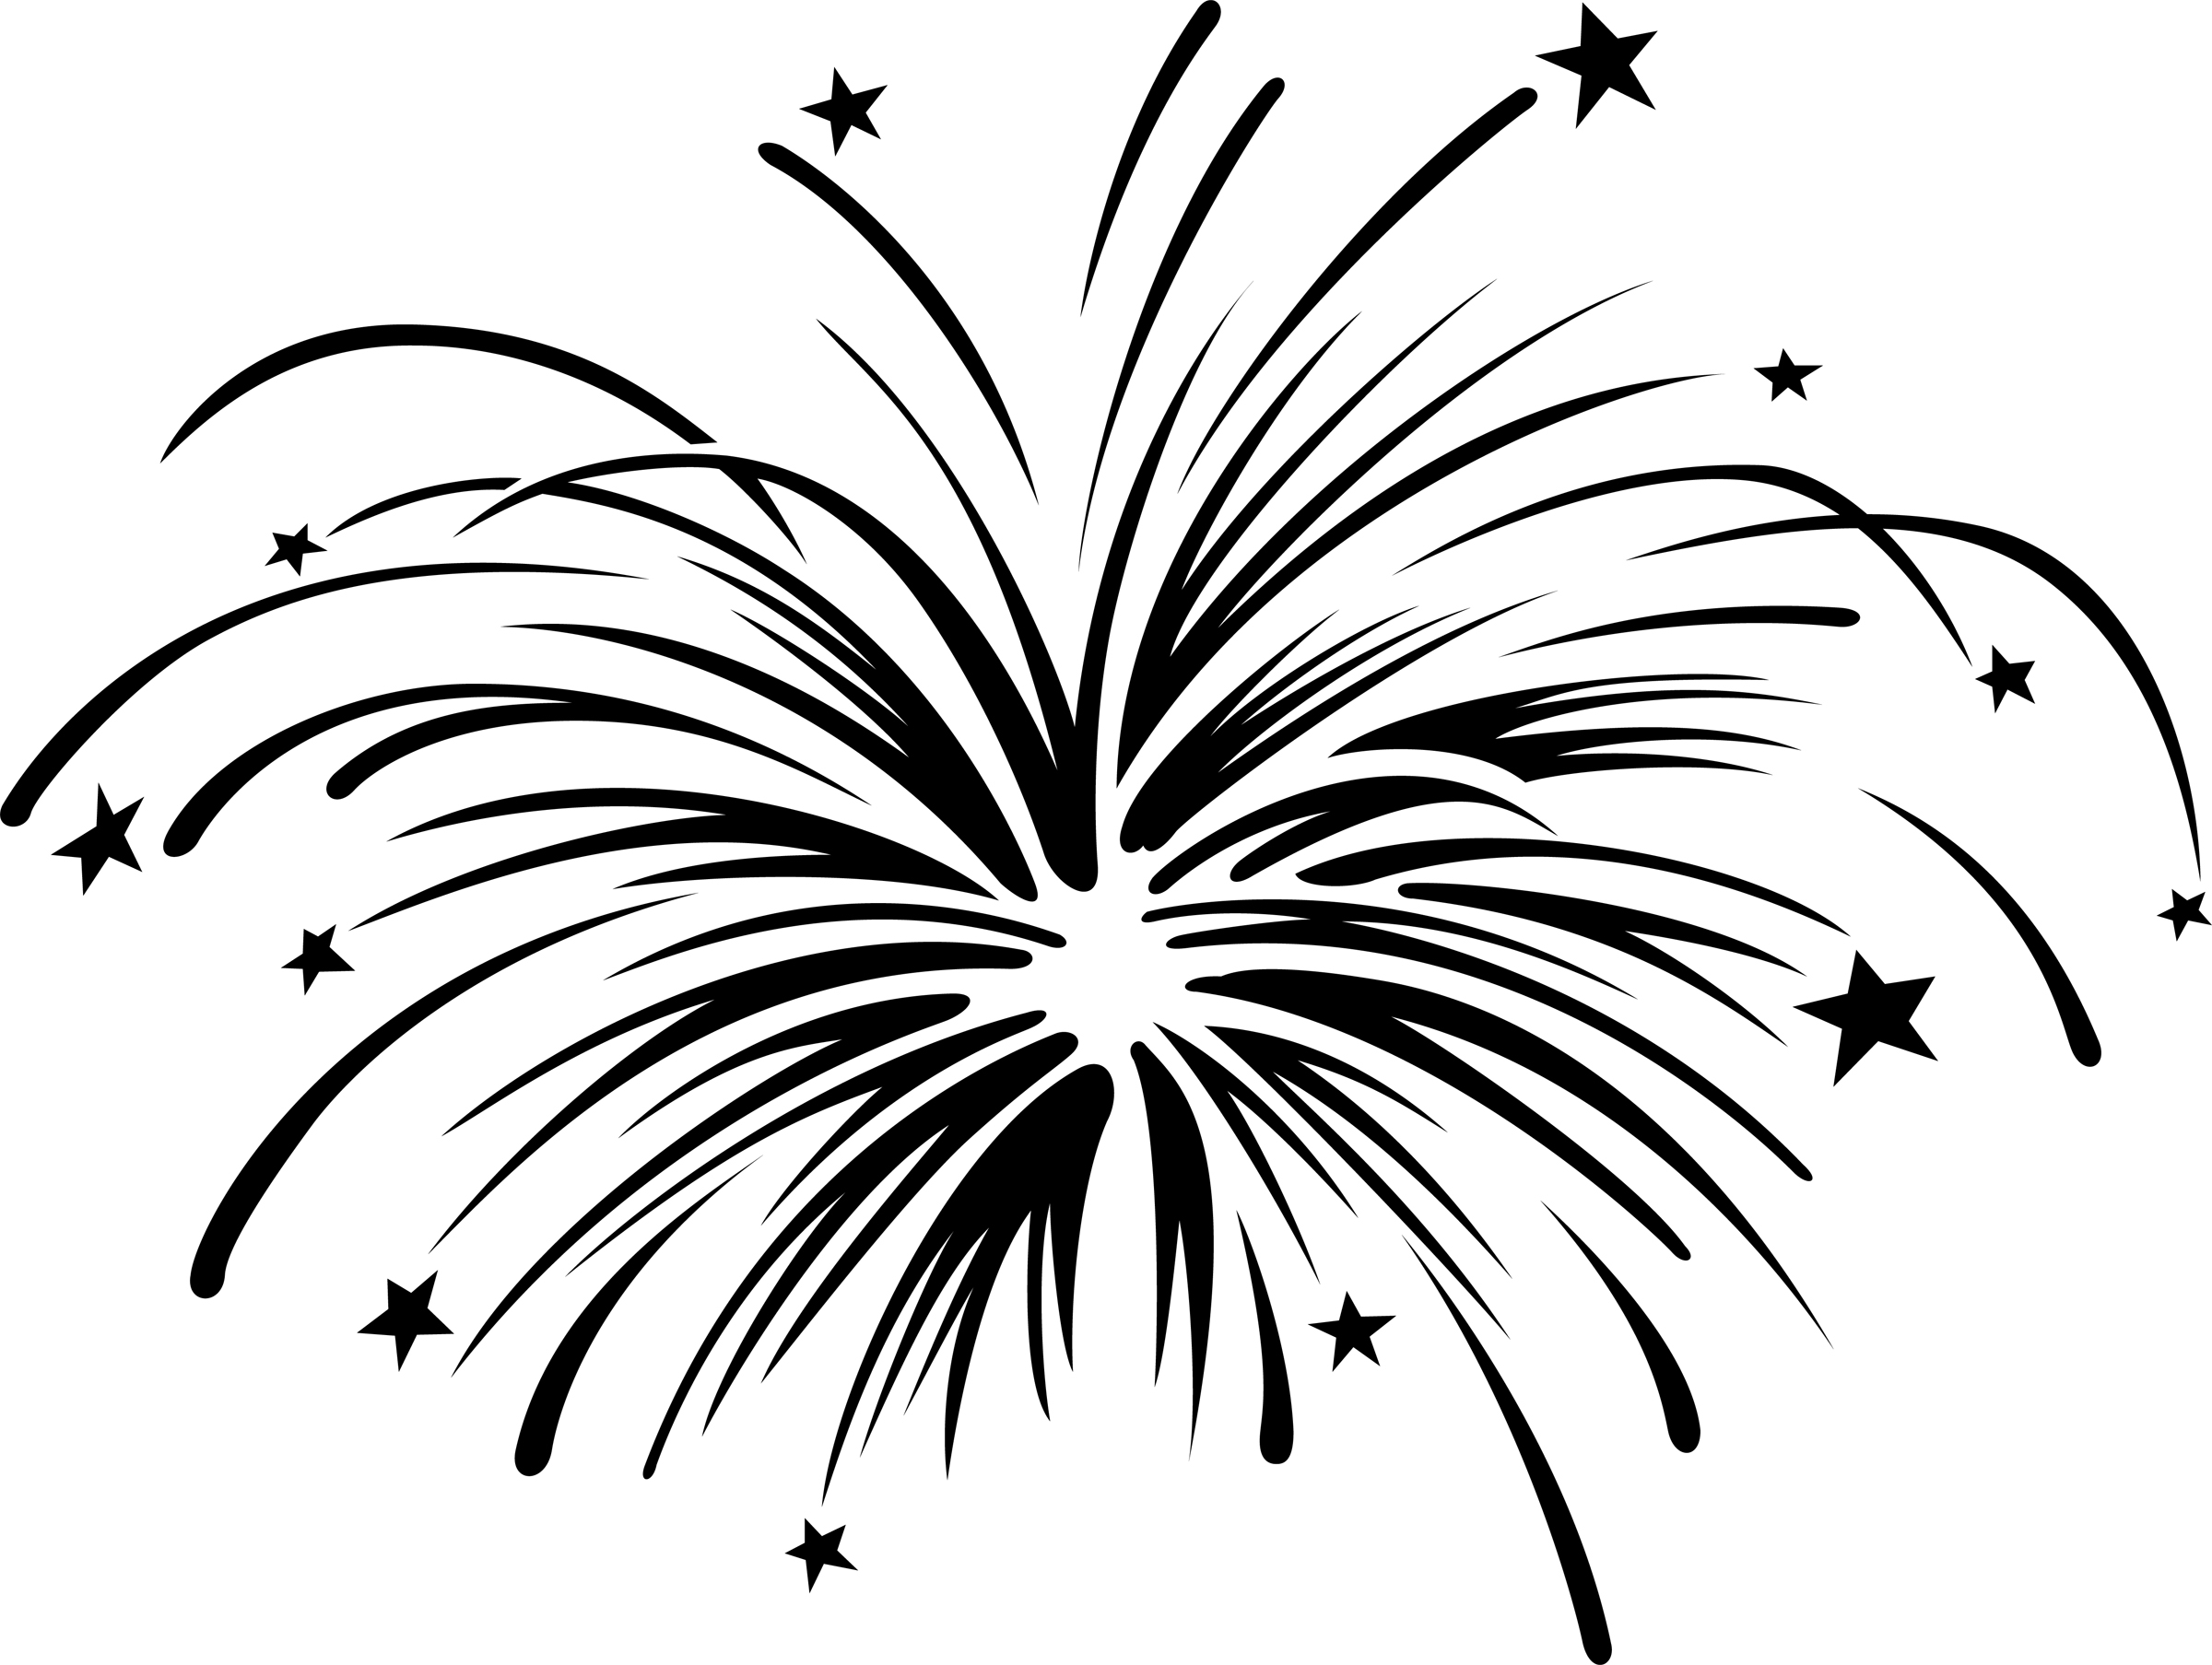 silhouette fireworks at getdrawings com free for 4th of july fireworks clip art images Happy 4th of July Fireworks